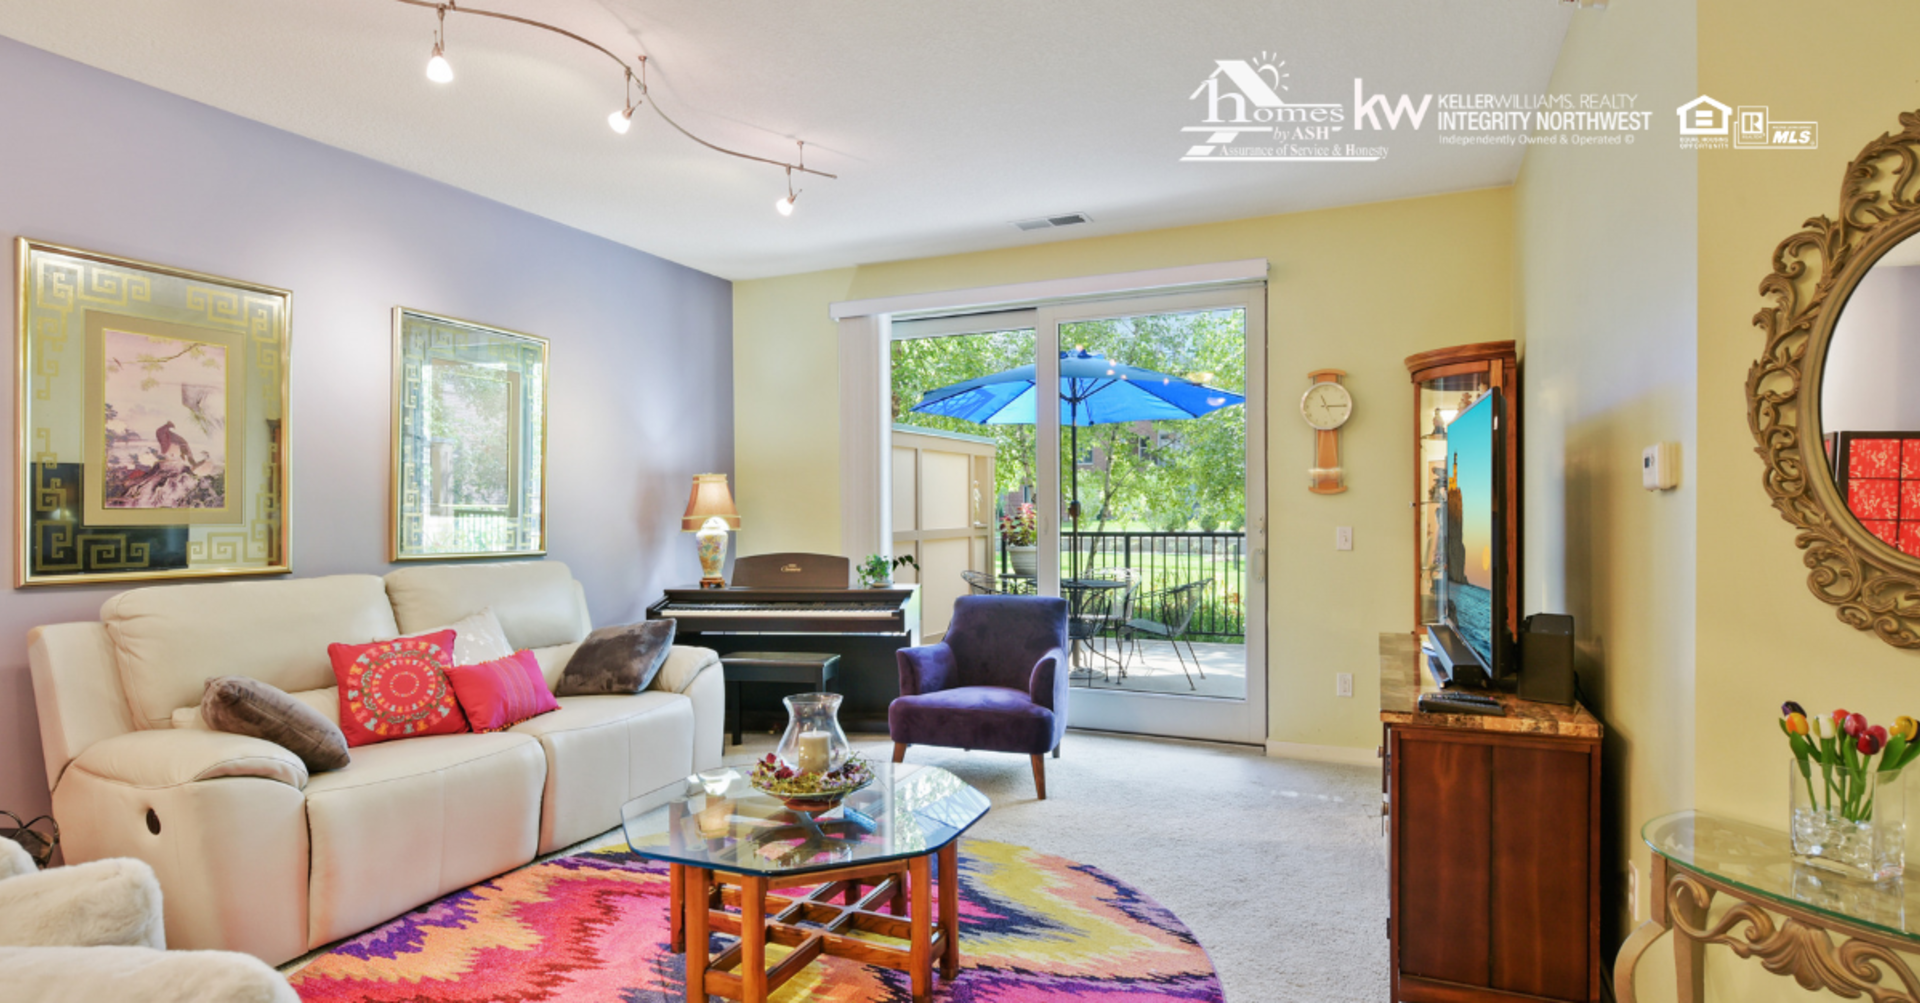 Beautiful Spaces Inside and Out in Columbia Heights!